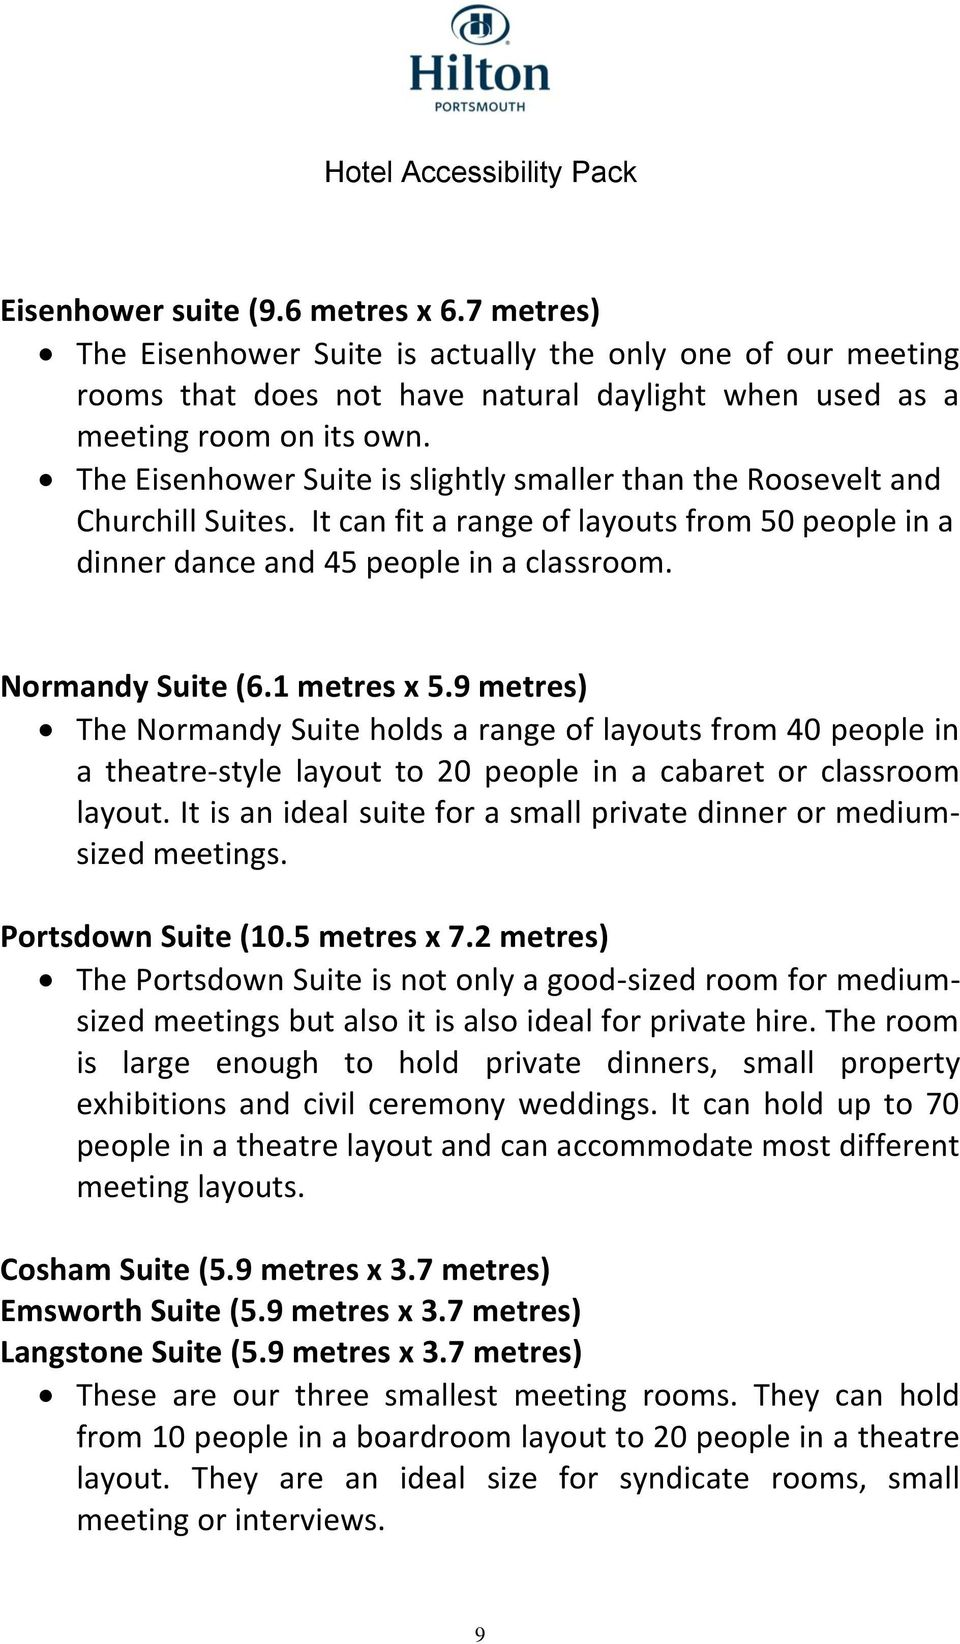 1 metres x 5.9 metres) The Normandy Suite holds a range of layouts from 40 people in a theatre-style layout to 20 people in a cabaret or classroom layout.